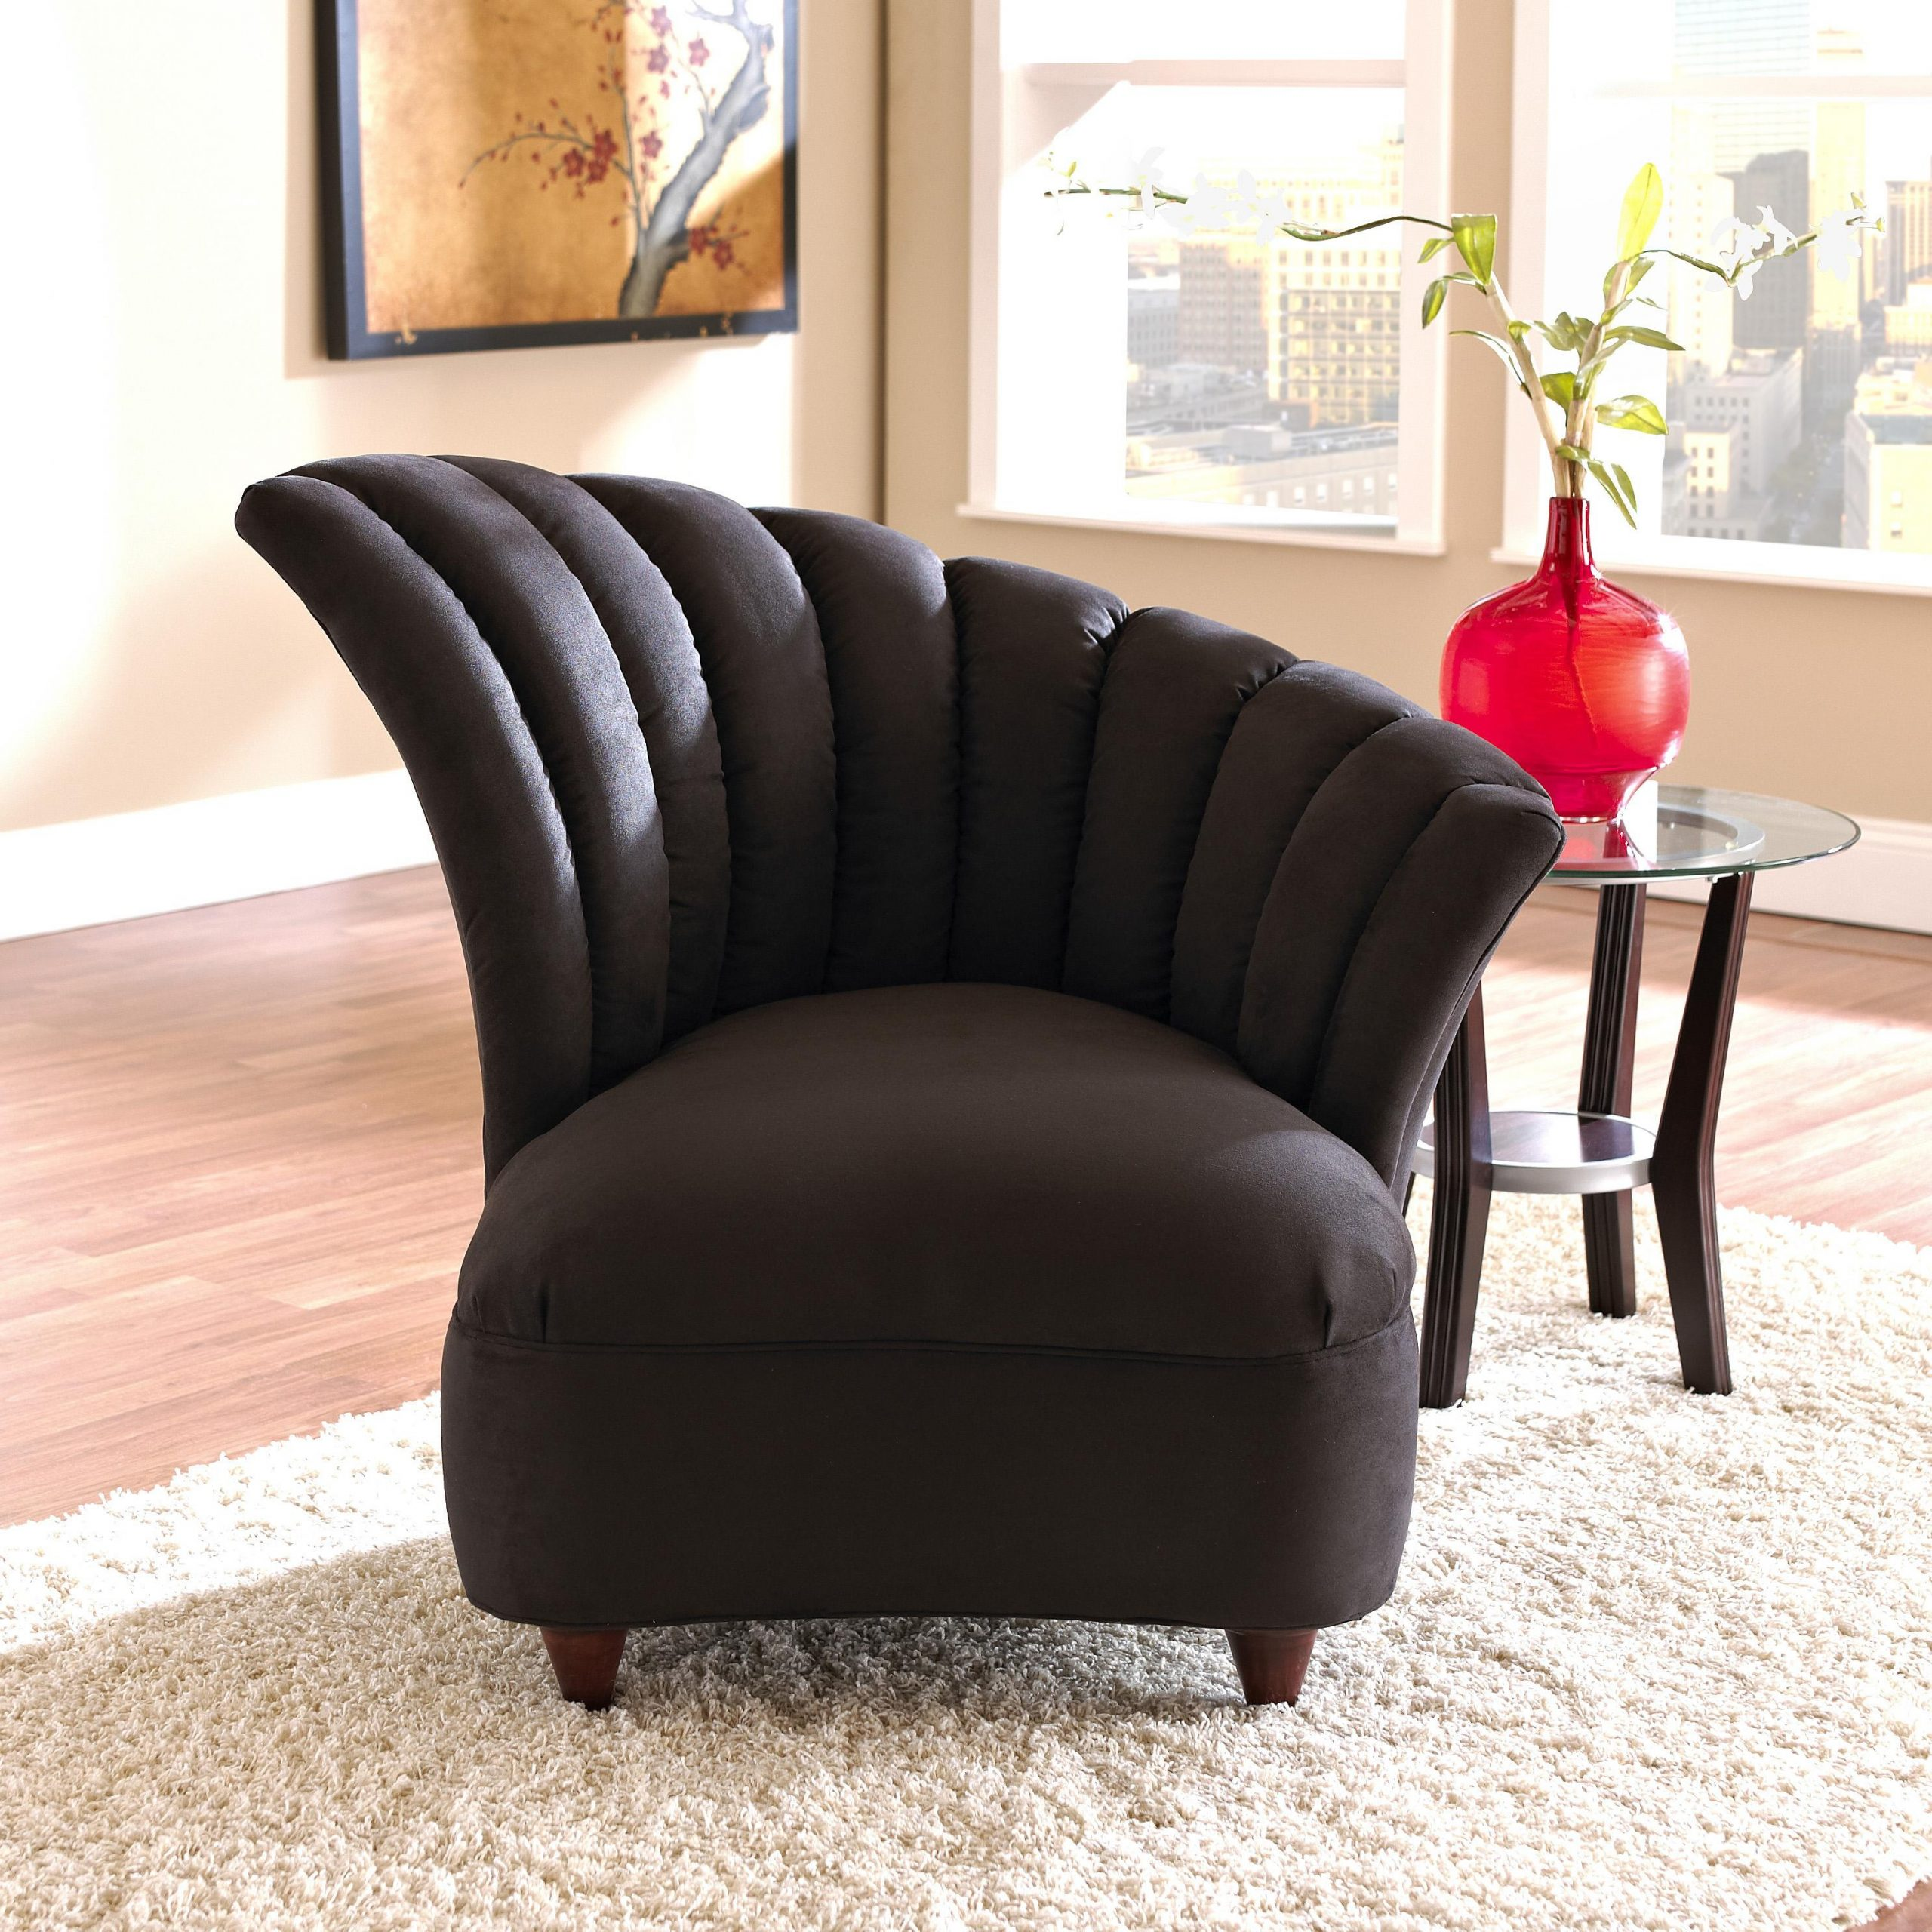 2019 Ansby Barrel Chairs Regarding Chairs And Accents (fabric)klaussner – Pilgrim Furniture (View 19 of 20)